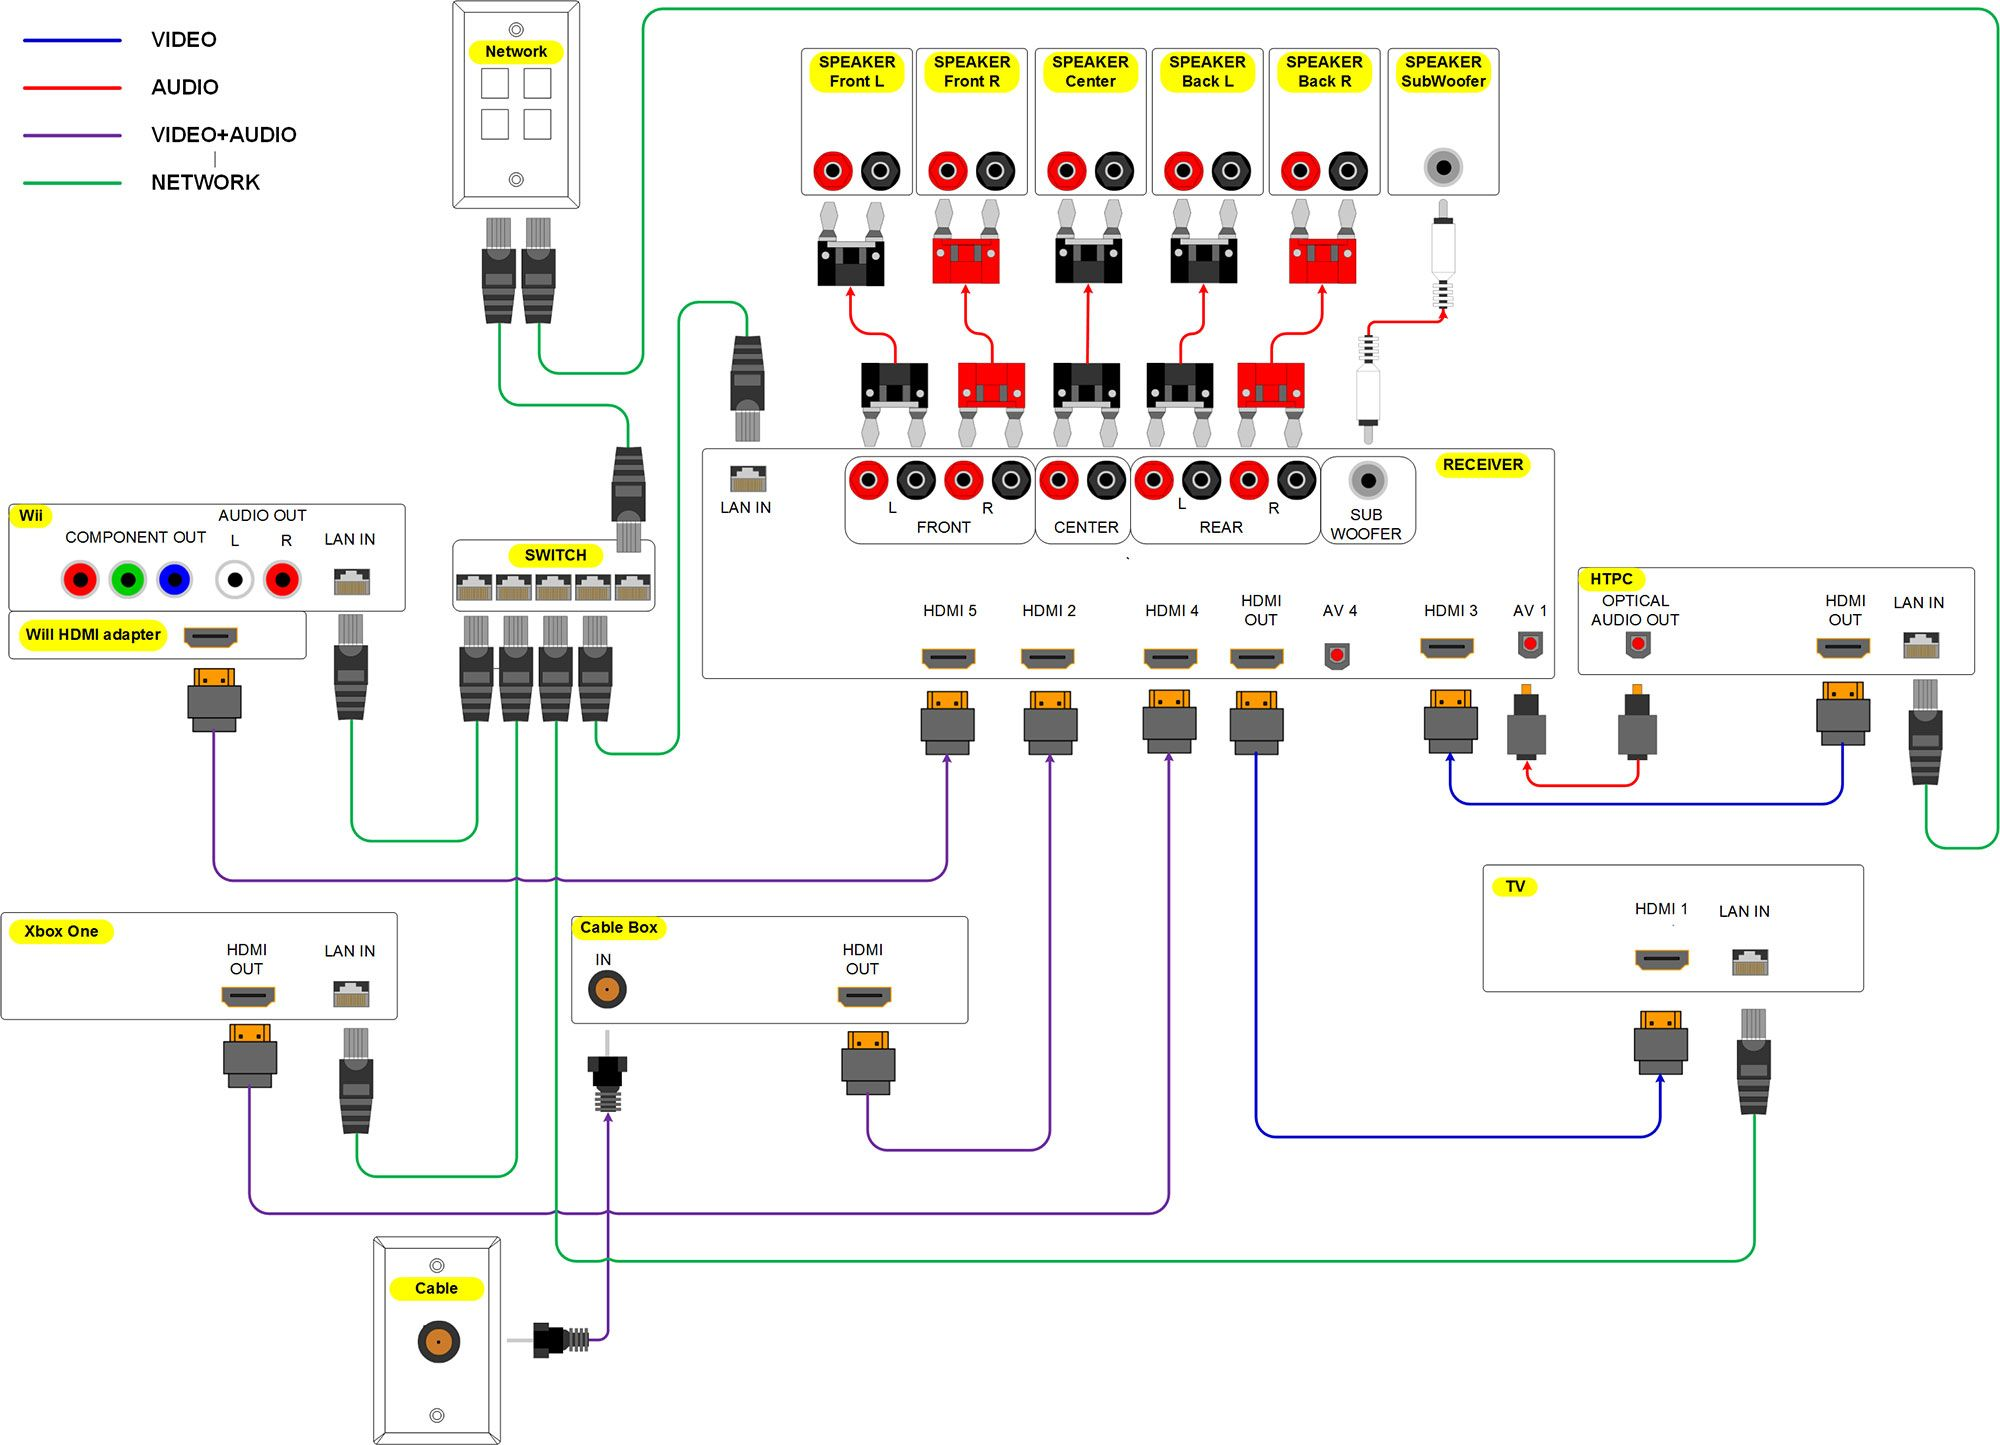 ae3ef715ed5d6ac384ec9c2b84075aef home theater wiring diagram (click it to see the big 2000 pixel home theater speaker wiring diagrams at eliteediting.co